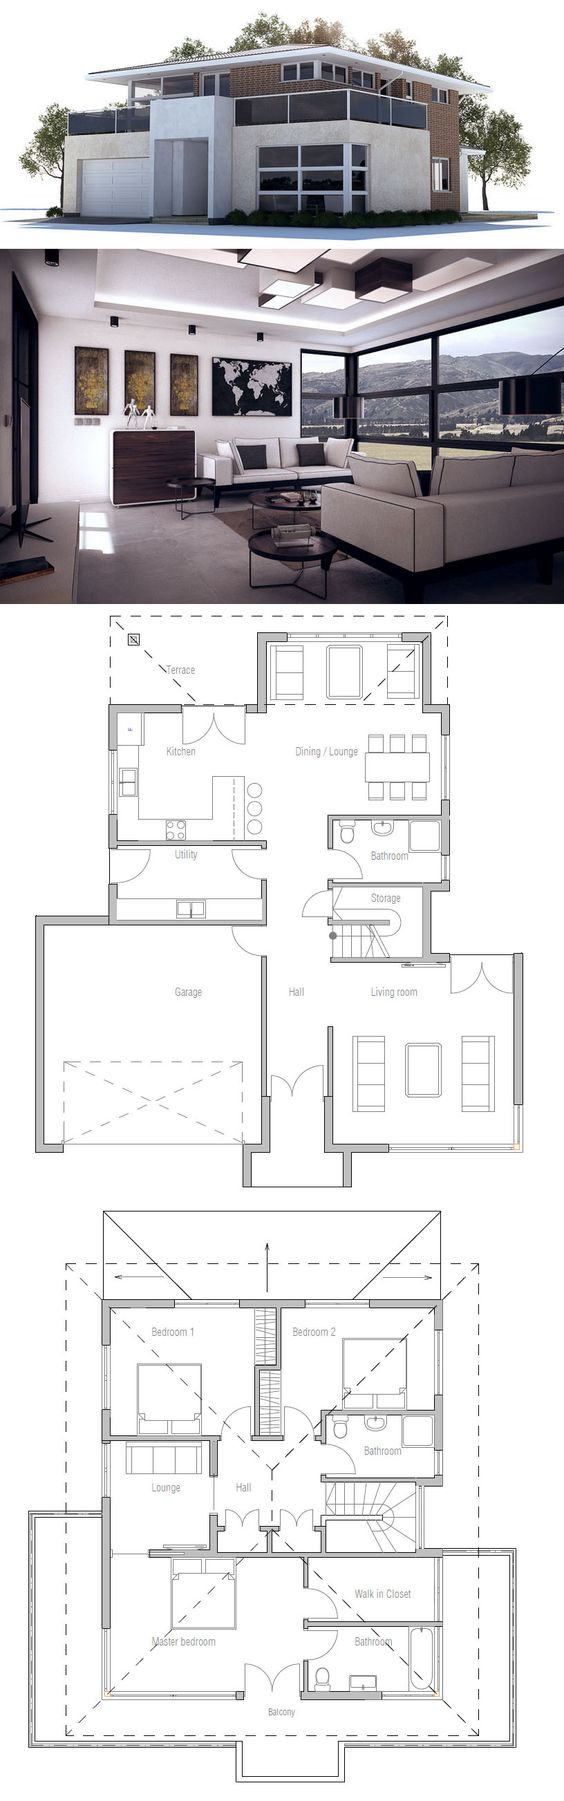 Hausplan haus idee hauspl ne pinterest house plans for Haus plan